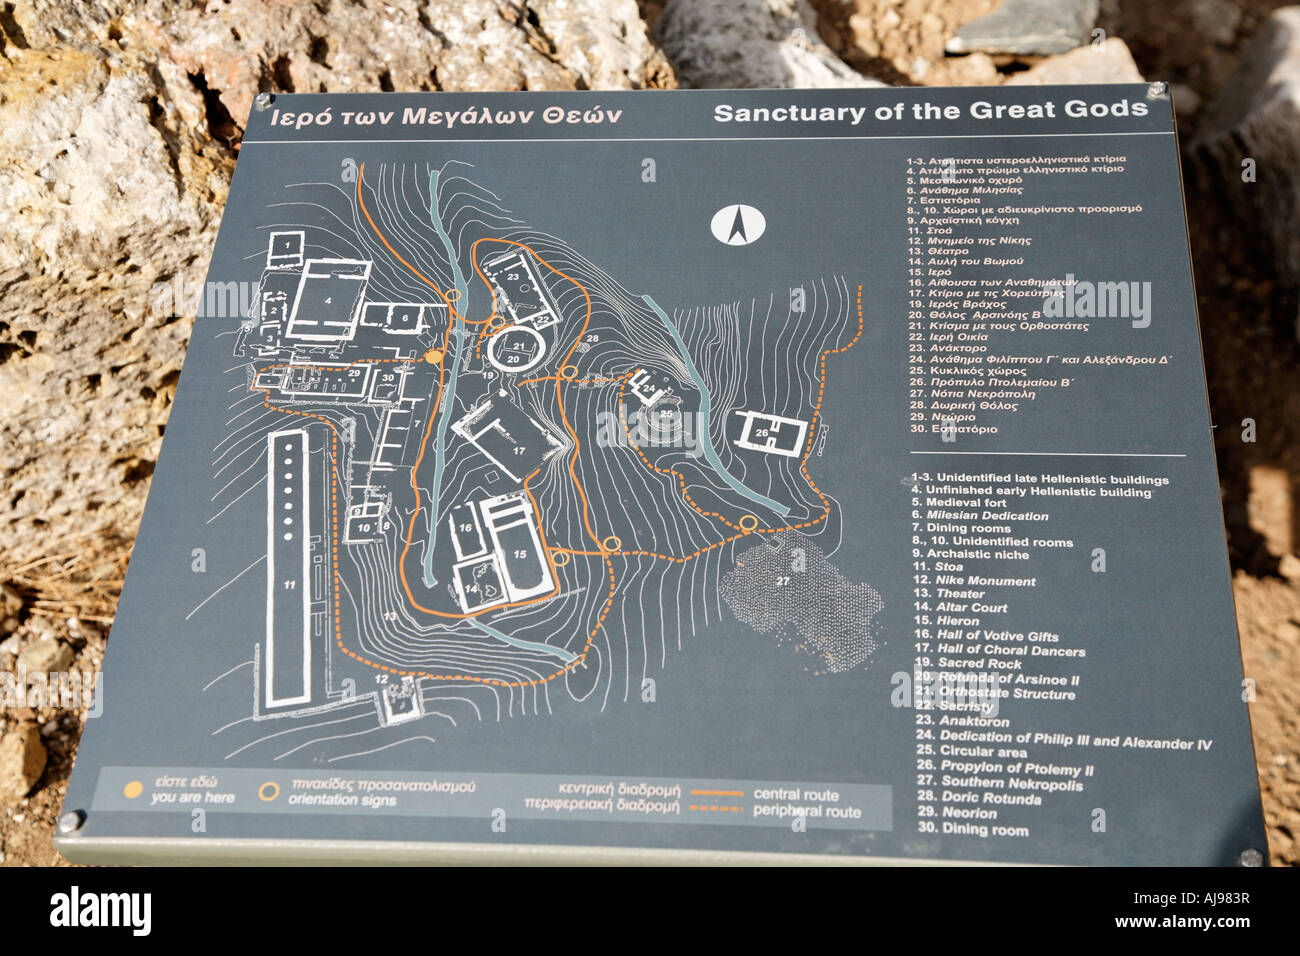 Map Of The Site Of The Great Gods Samothraki Greek Islands Greece